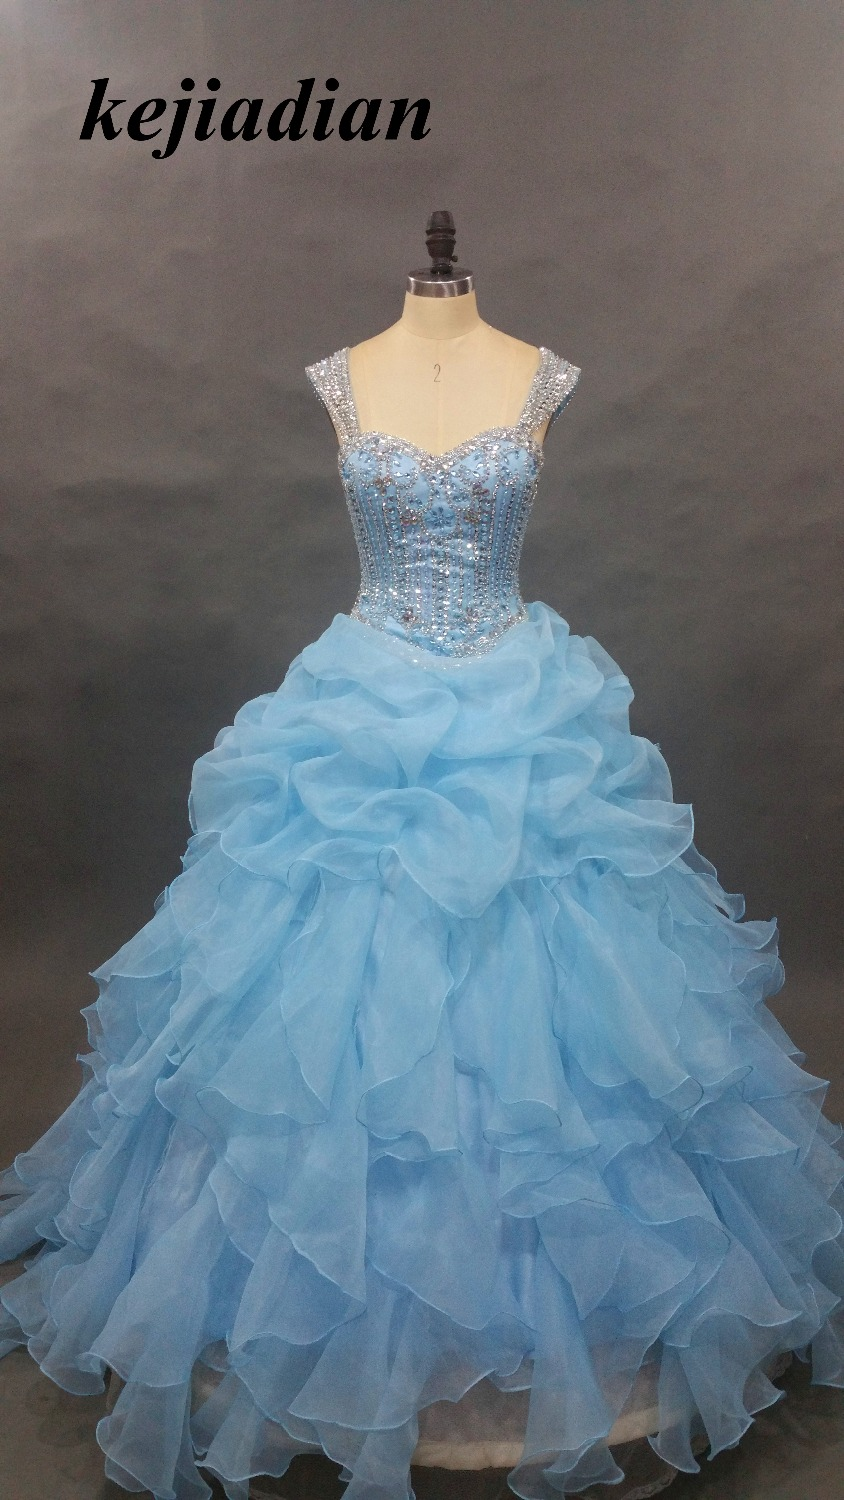 Quinceanera Dresses Luxury Blue Quinceanera Dresses 2017 Ball Gown Crystal Beaded Appliques Tulle Long Girl Debutante Gown Vestido 15 Anos